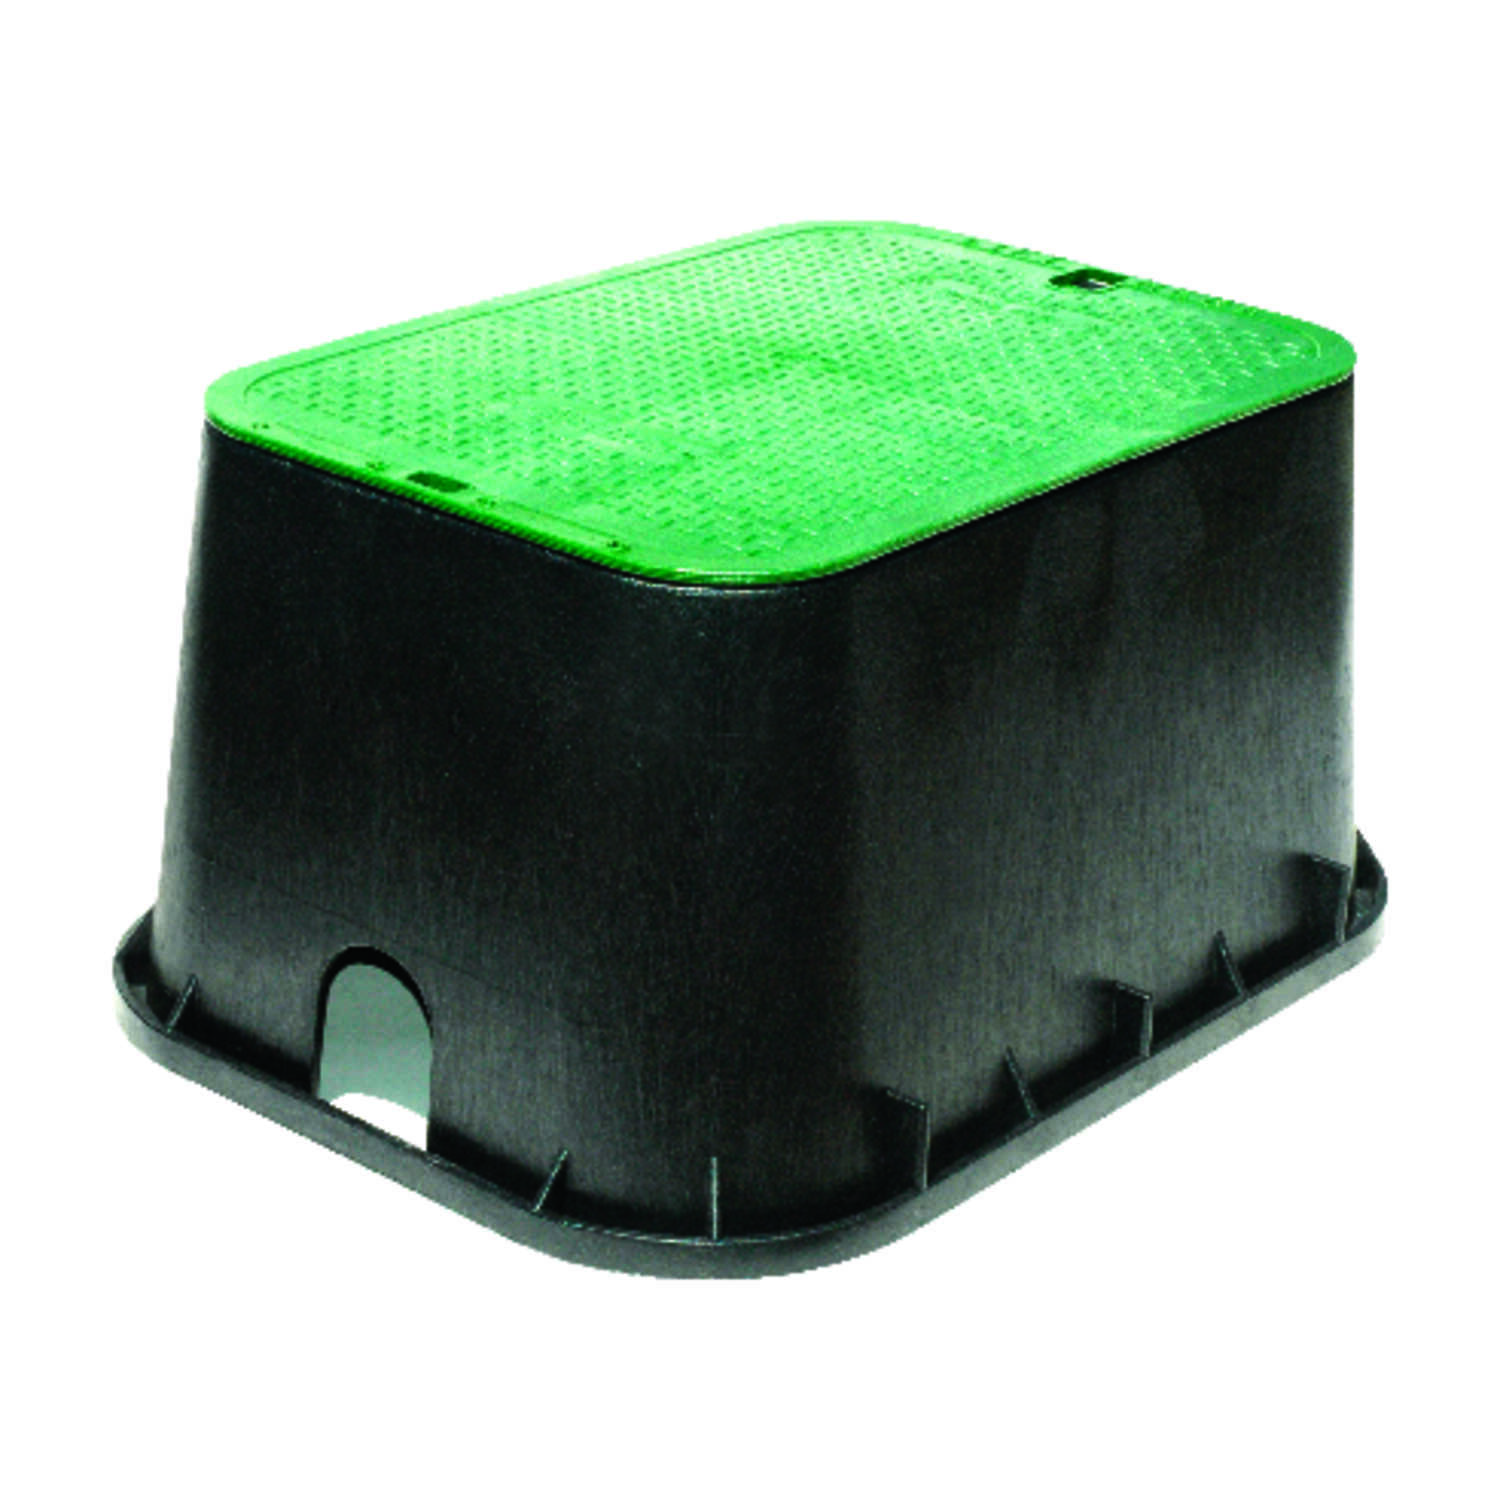 NDS  Rectangular  Valve Box with Overlapping Cover